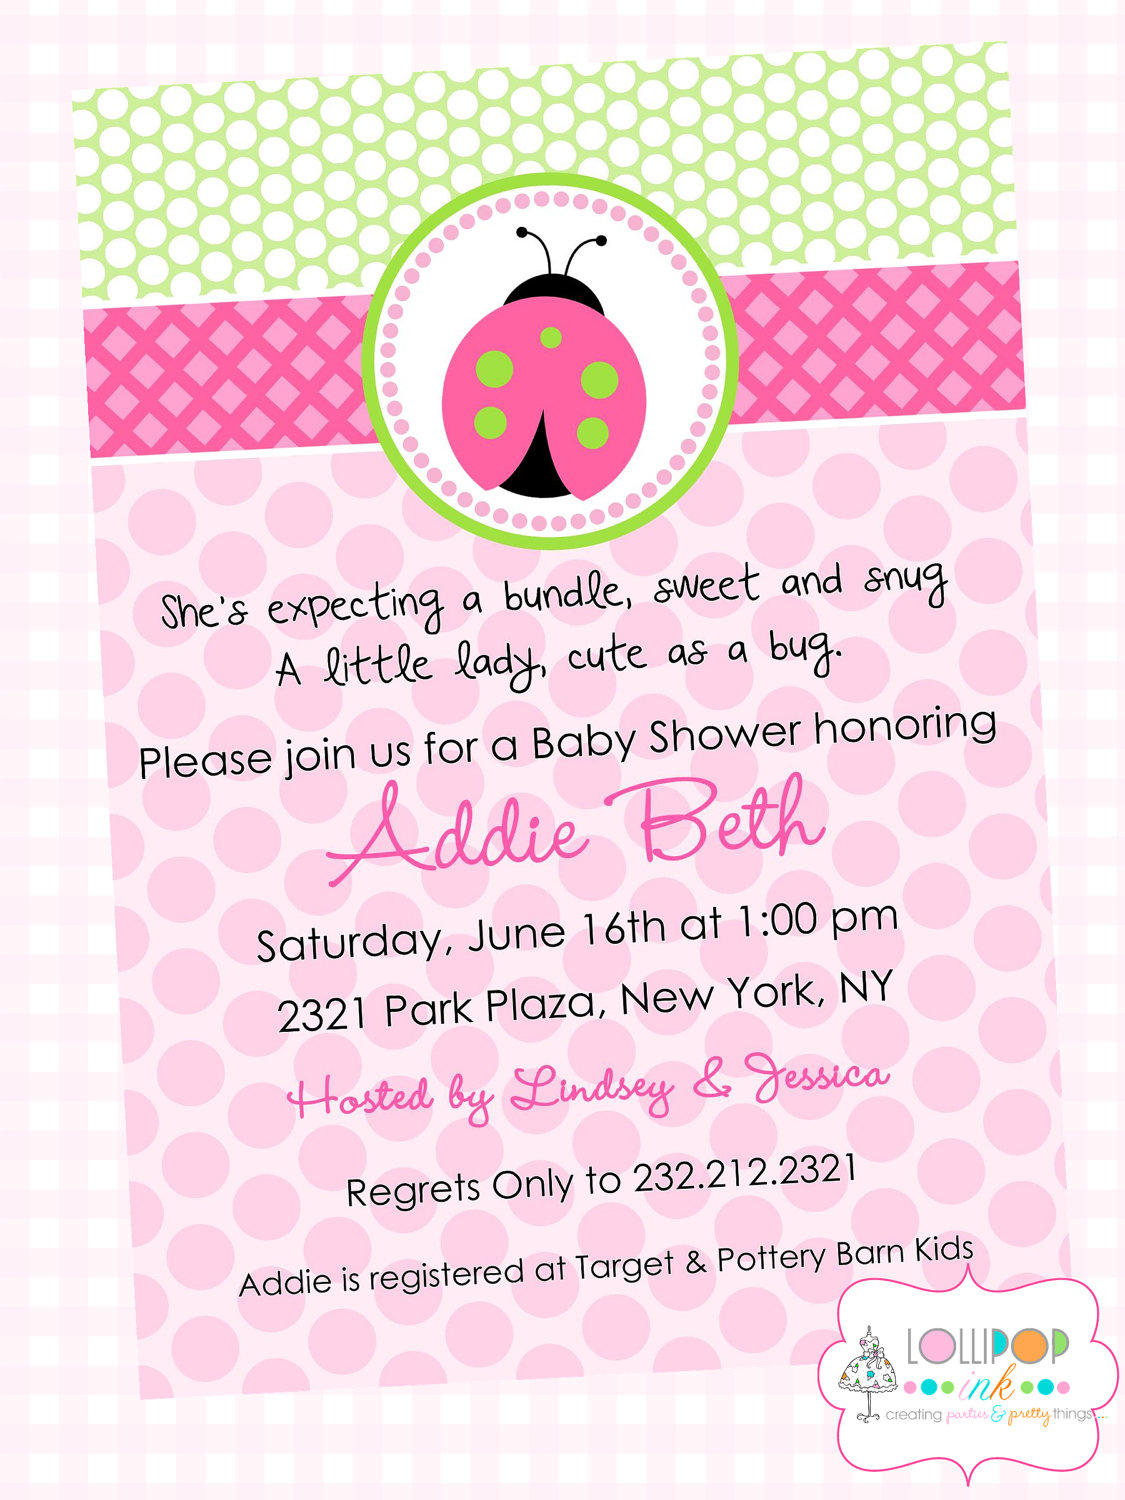 Cute Baby Shower Invite Wording For A Girl Baby Showers Design